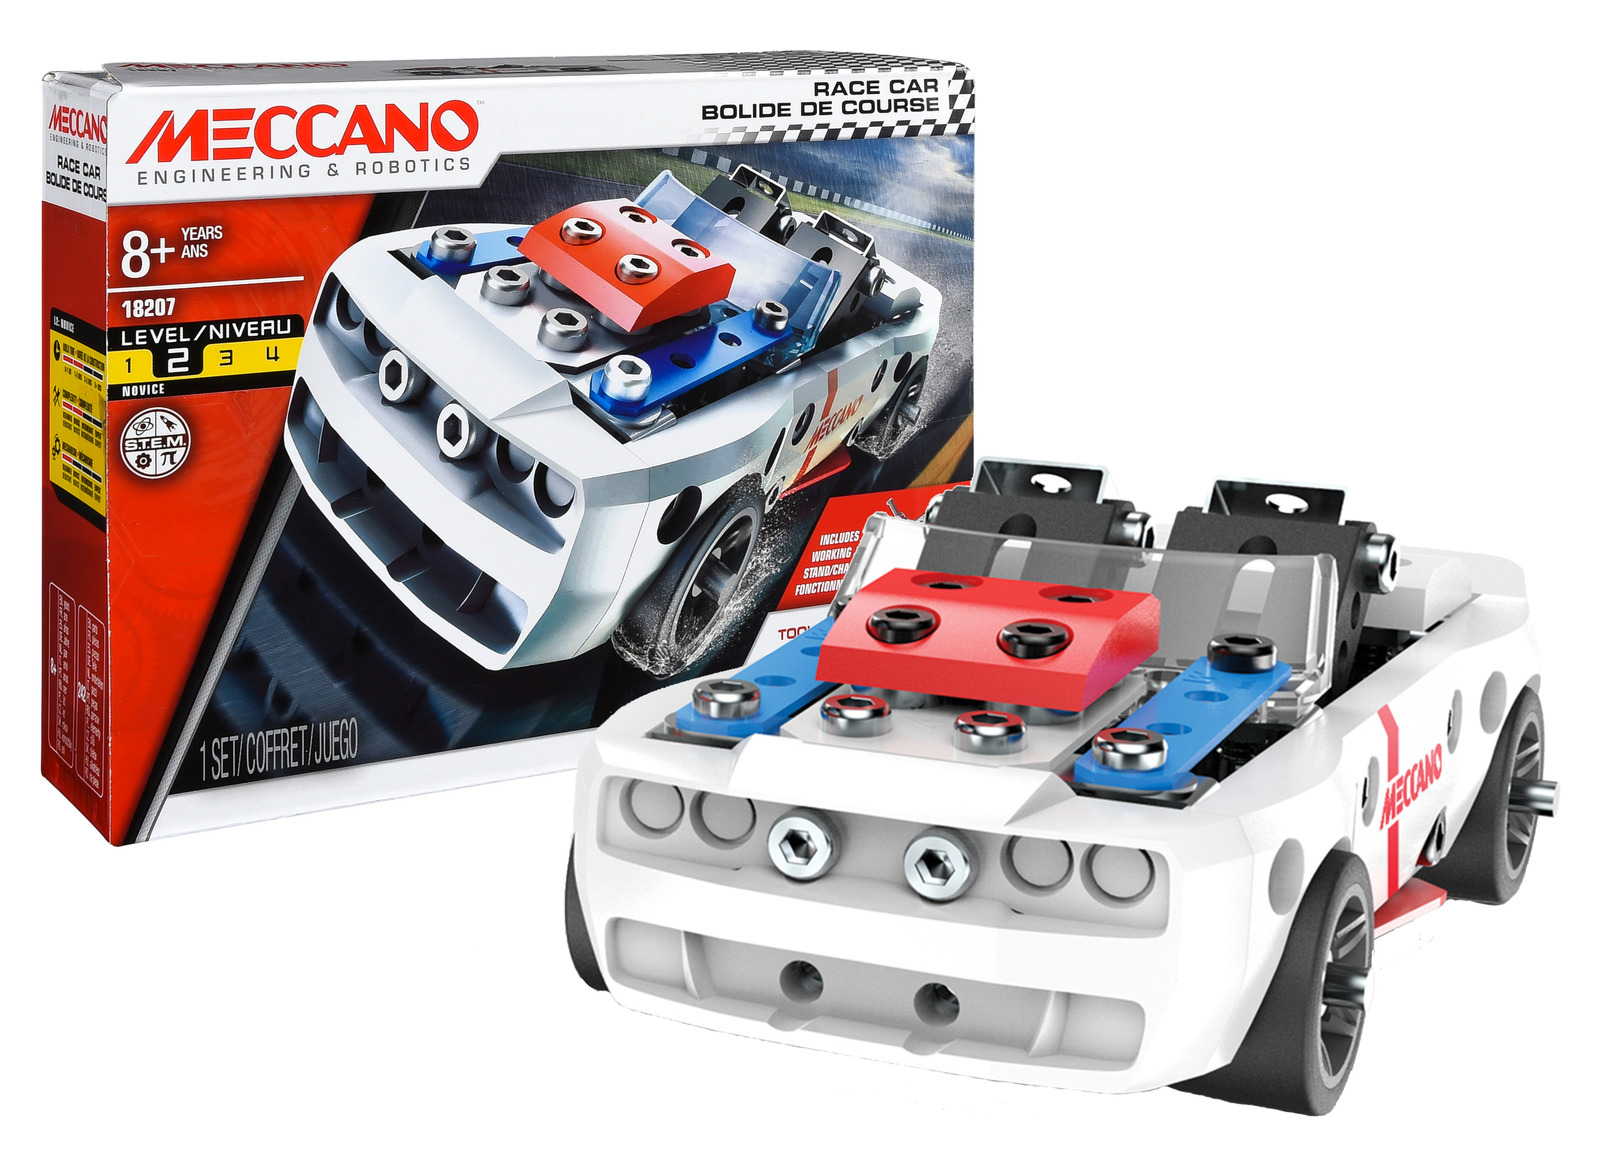 Meccano 5 Race Car Vehicle STEM Construction Game Toy Gift Model Building Set